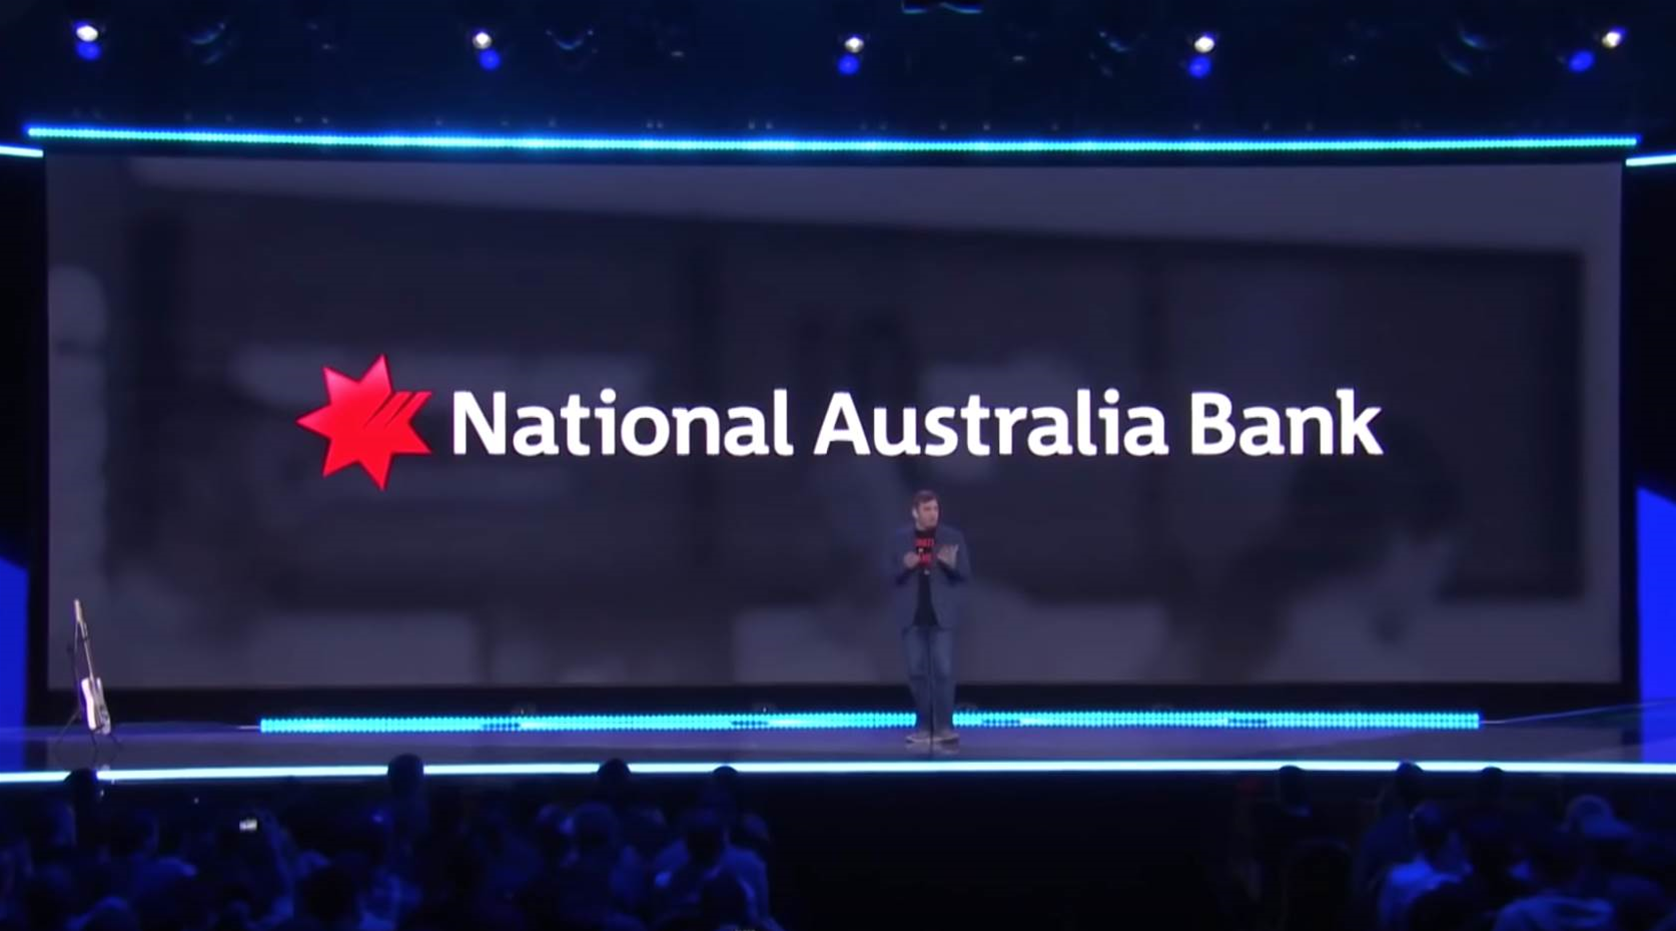 NAB's public cloud expansion ran without internal IT staff